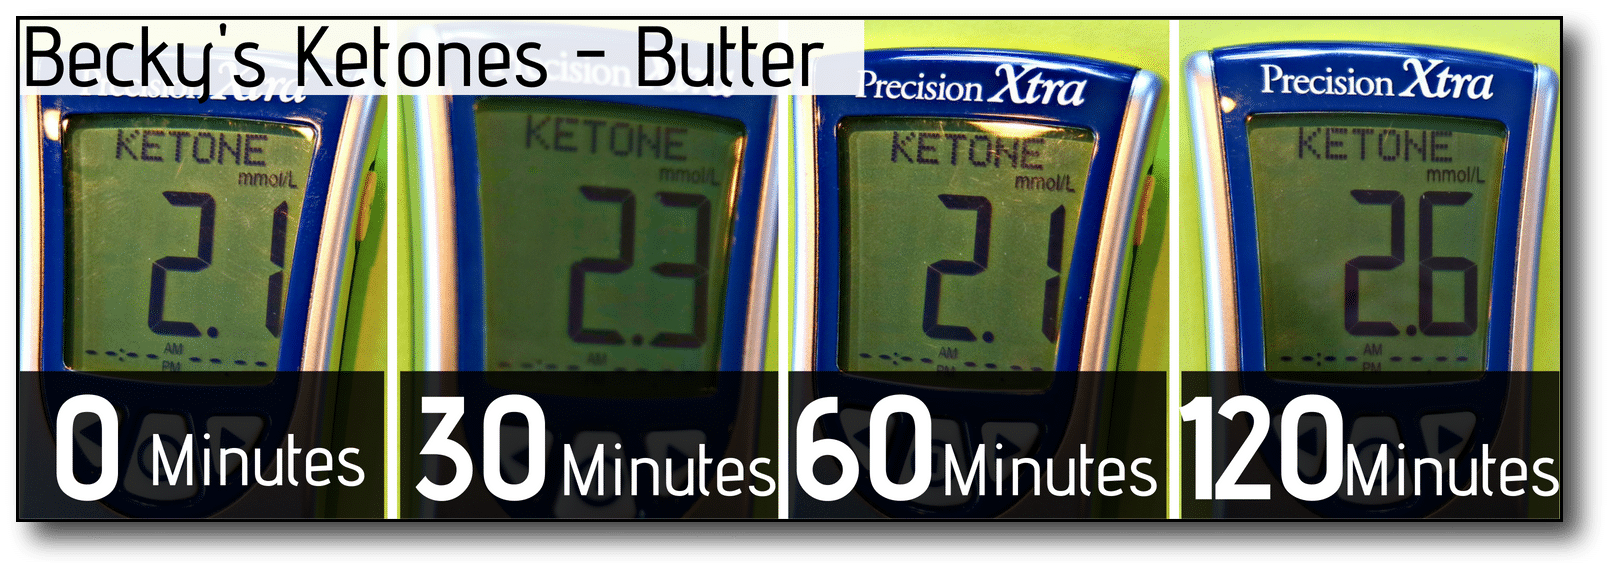 coffee and intermittent fasting-becky ketones butter